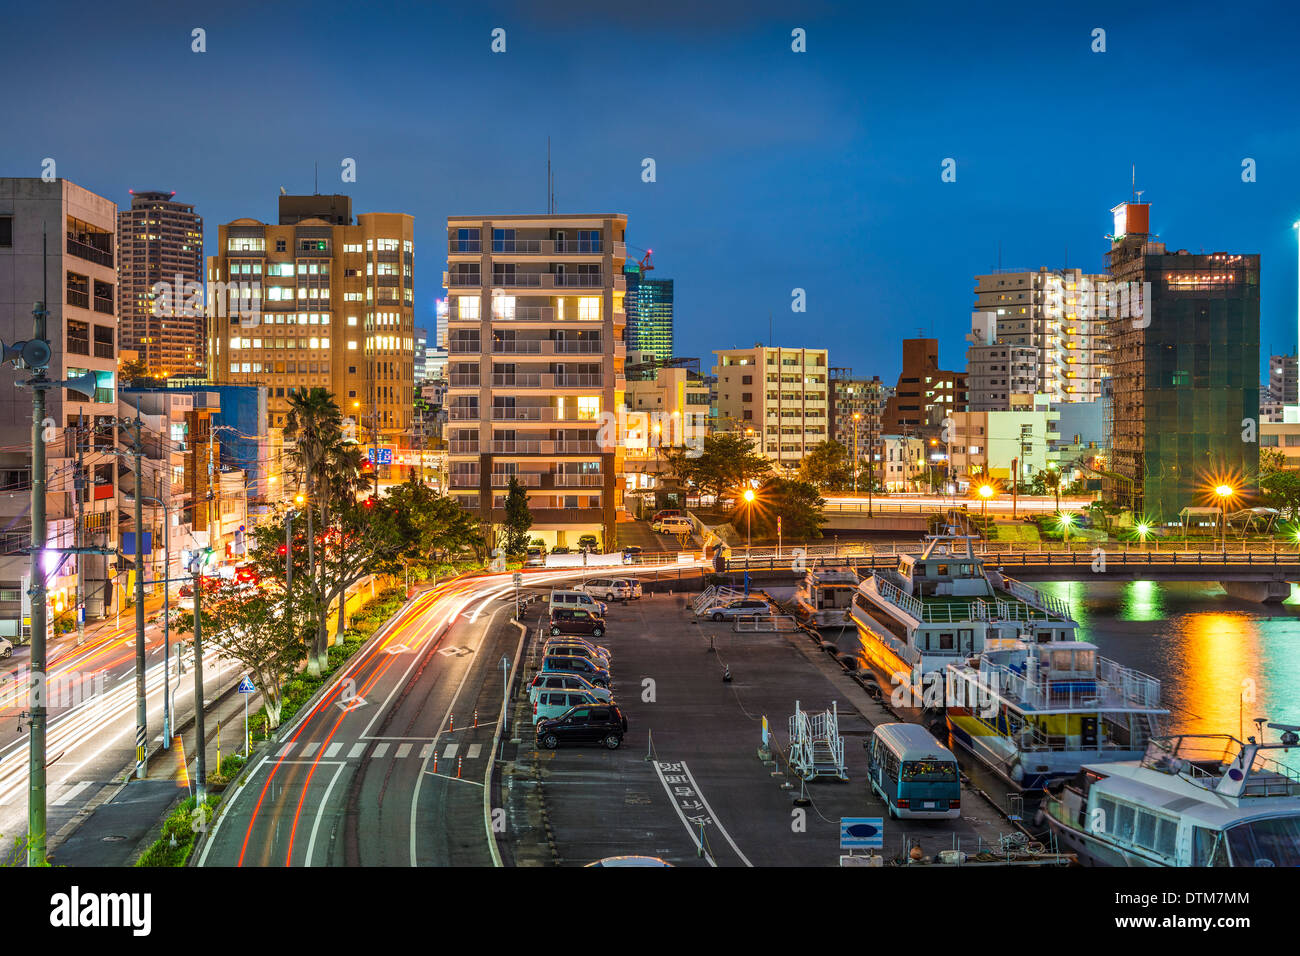 Naha, Okinawa, Japan Skyline in der Hafenstadt. Stockbild